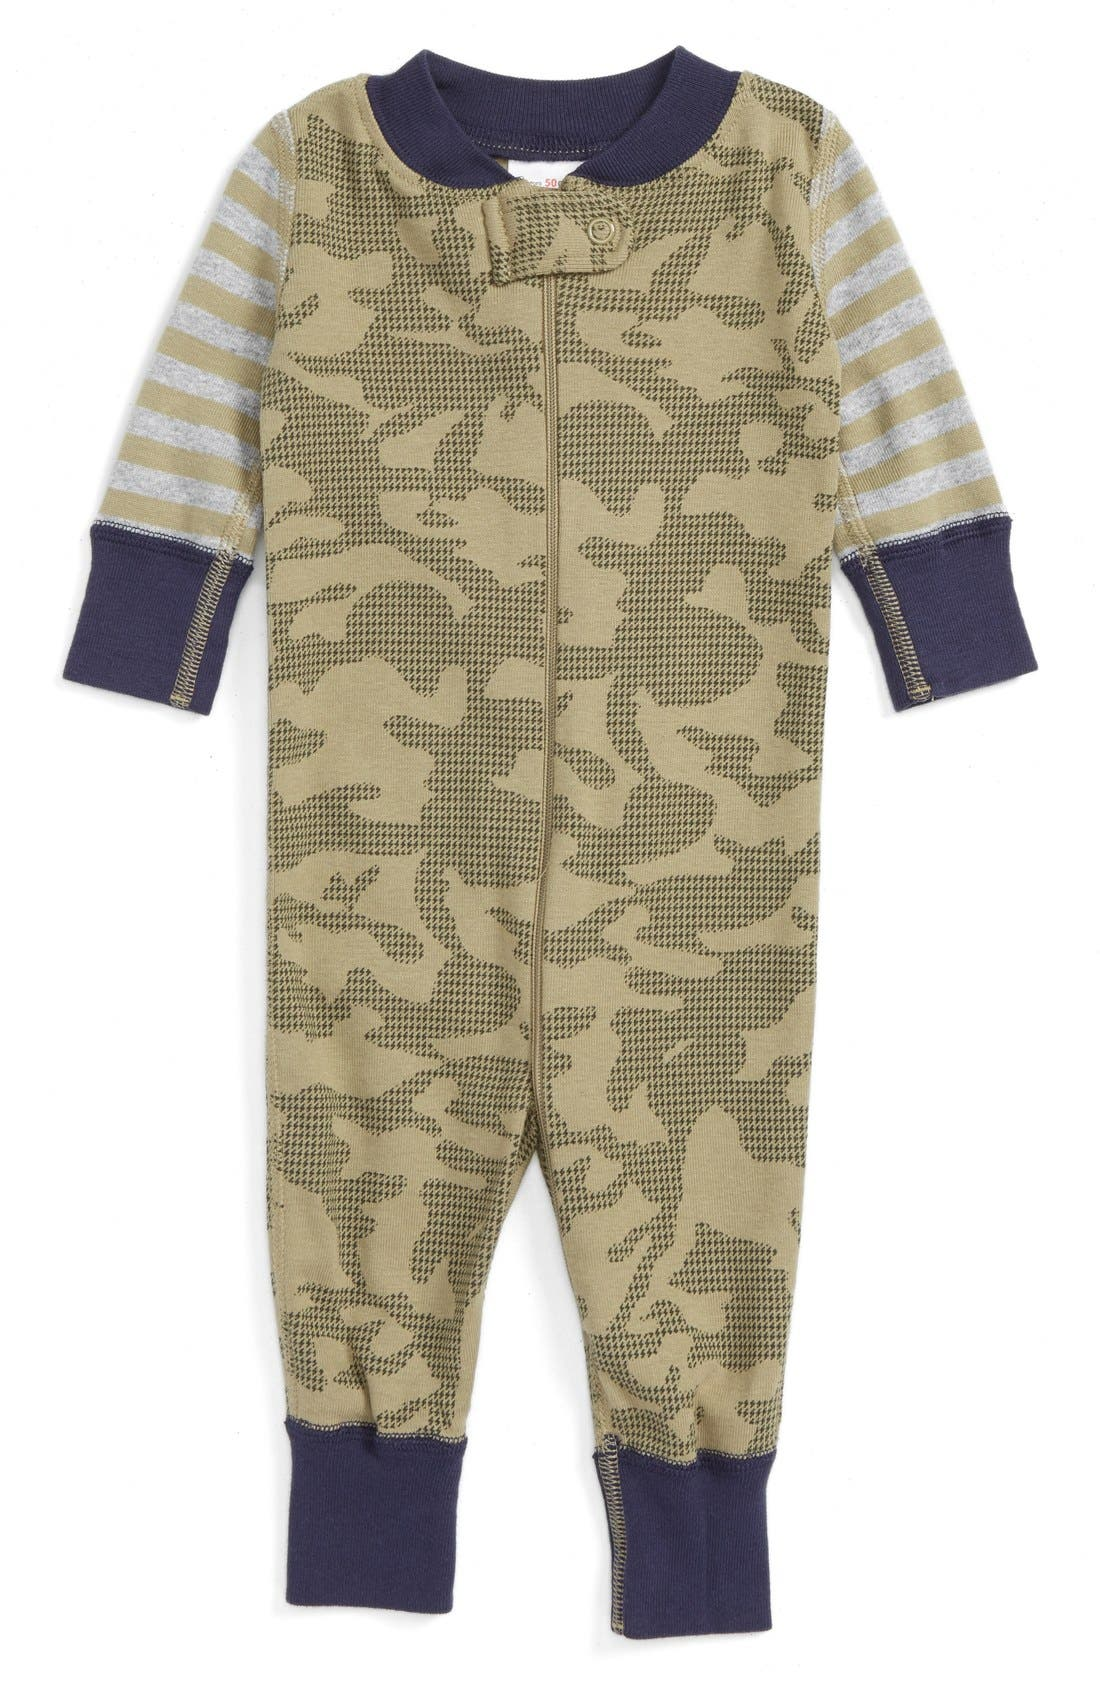 Alternate Image 1 Selected - Hanna Andersson Organic Cotton Fitted One-Piece Pajamas (Baby Boys)